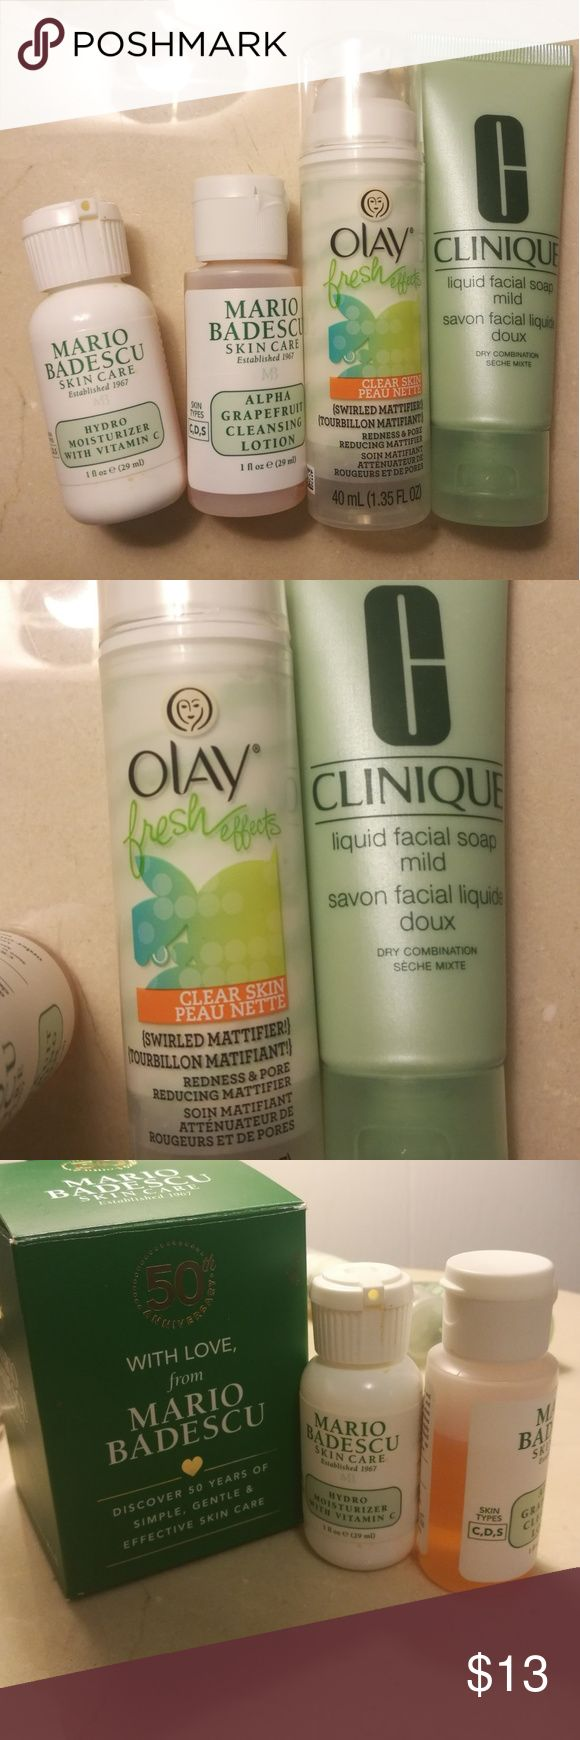 Skin care beauty bundle Bundle of skin care products. Includes 2 travel size Mario Badescu products both 1fl oz: hydro moisturizer and alpha grapefruit cleansing lotion, both sampled only two times. Olay fresh effects mattifier, and Clinique liquid facial soap in 1.7 fl oz used maybe once. Clinique Other